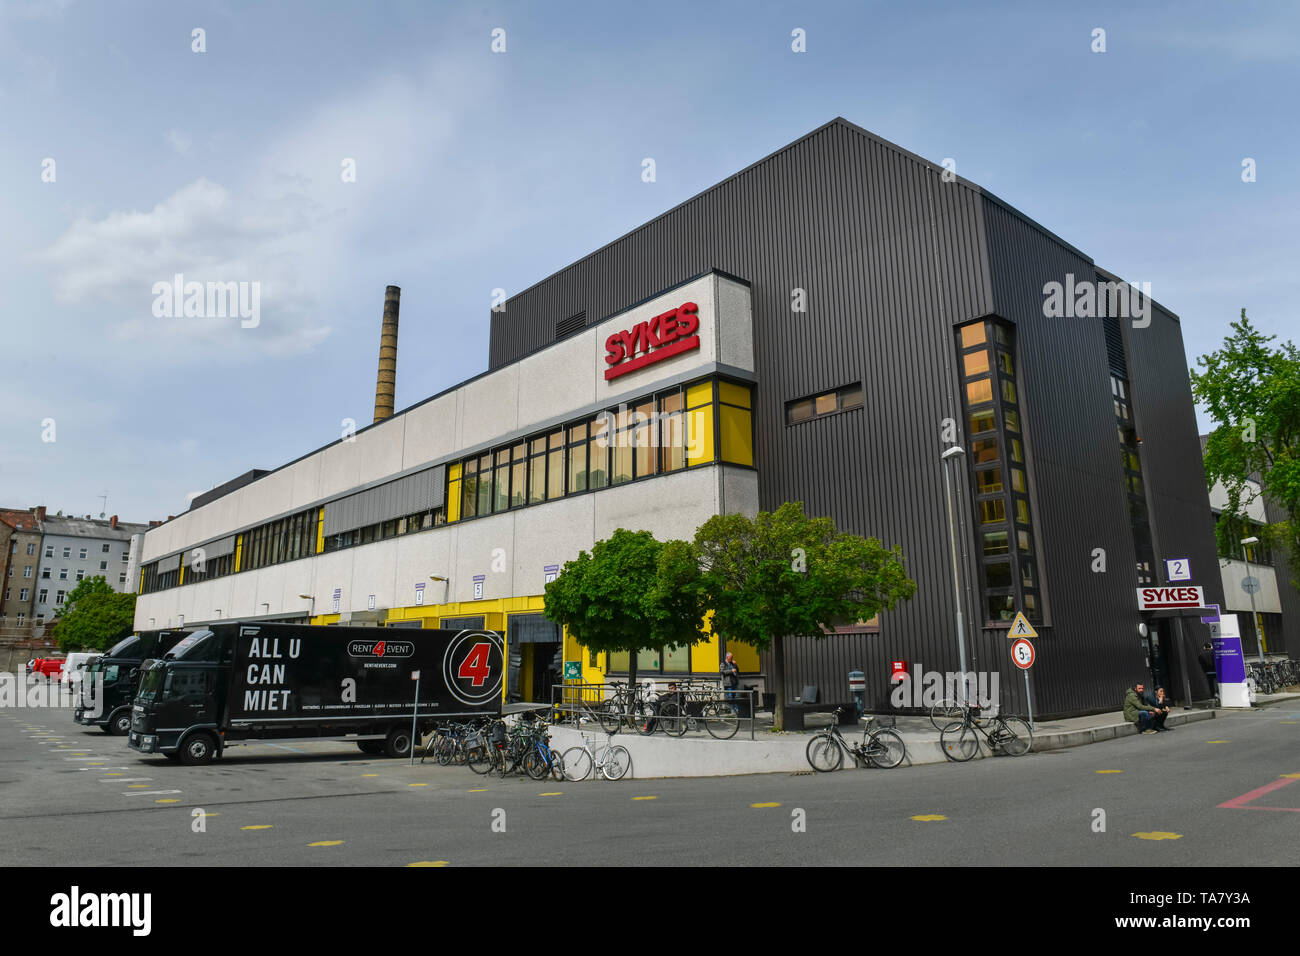 Sykes, Zeughofstrasse, cross mountain, Berlin, Germany, Zeughofstraße, Kreuzberg, Deutschland Stock Photo